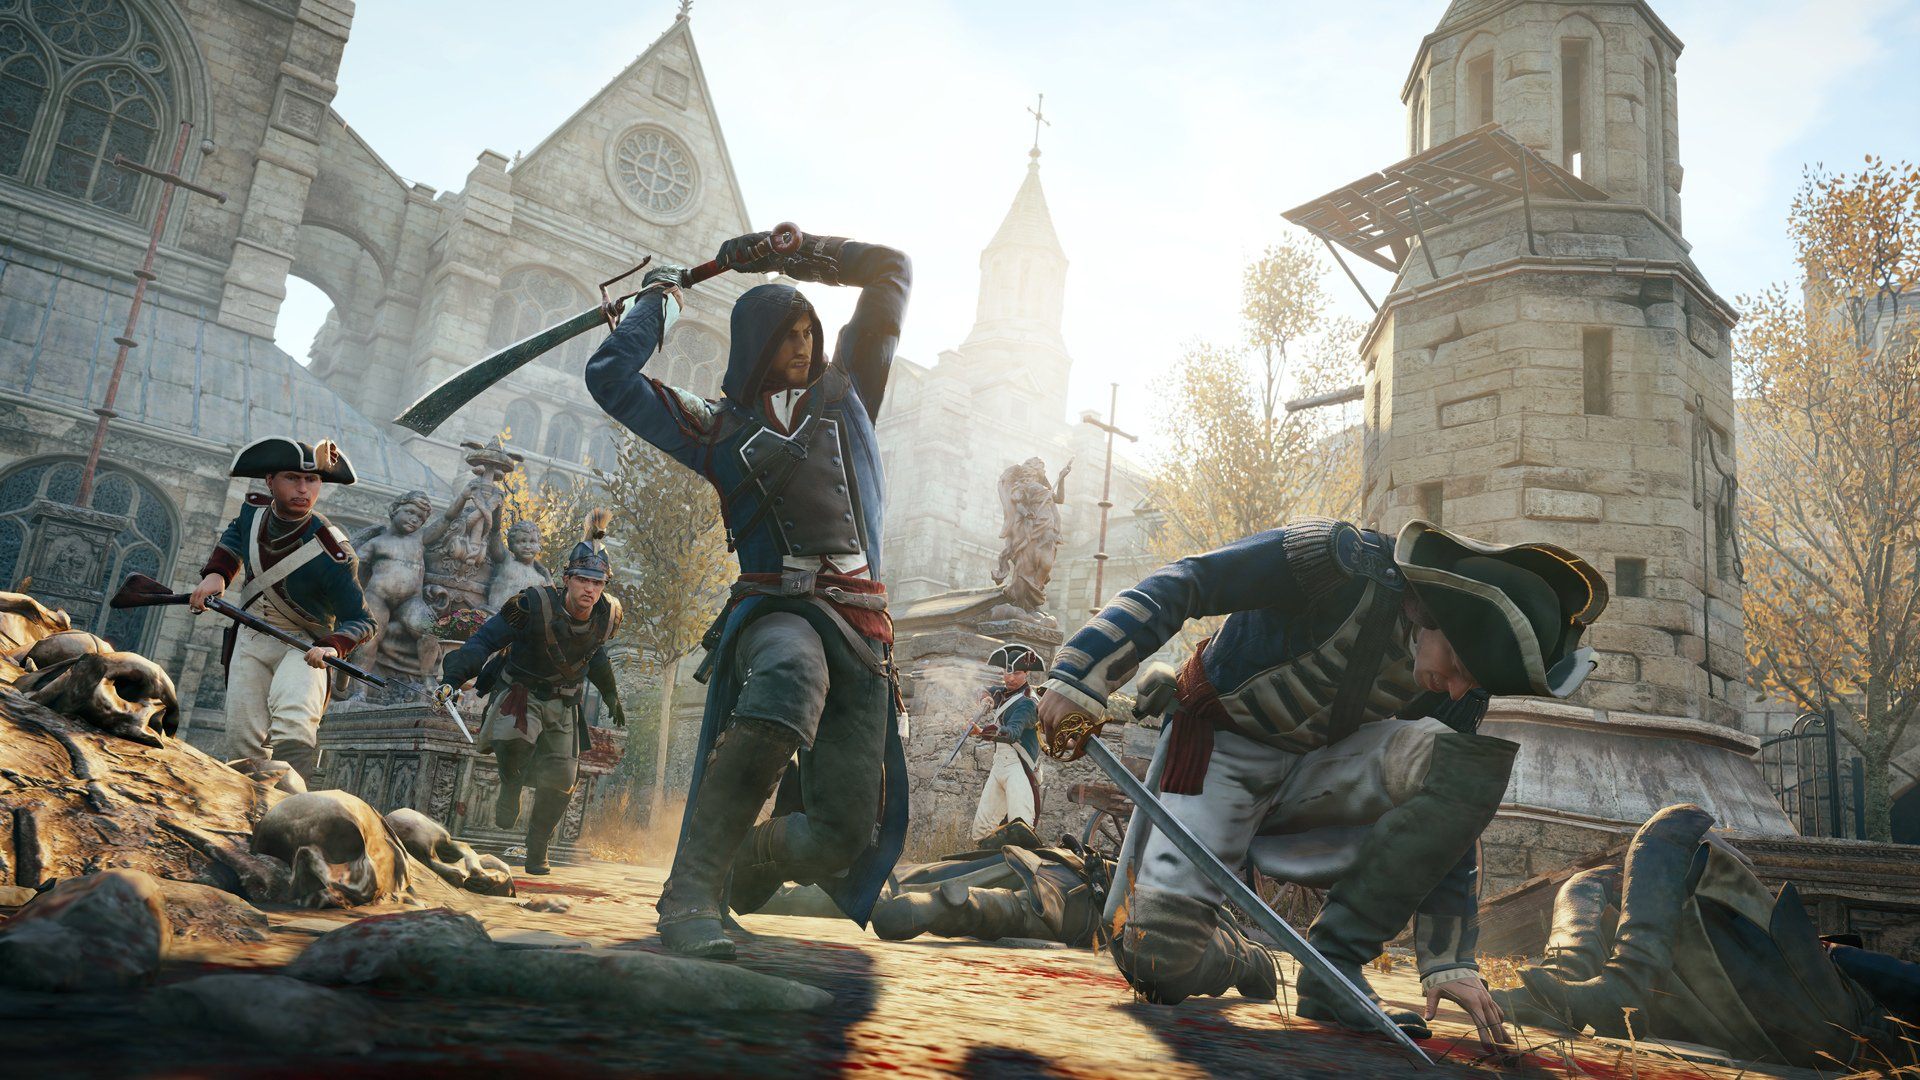 assassin__039_s_creed_unity-2654677.jpg